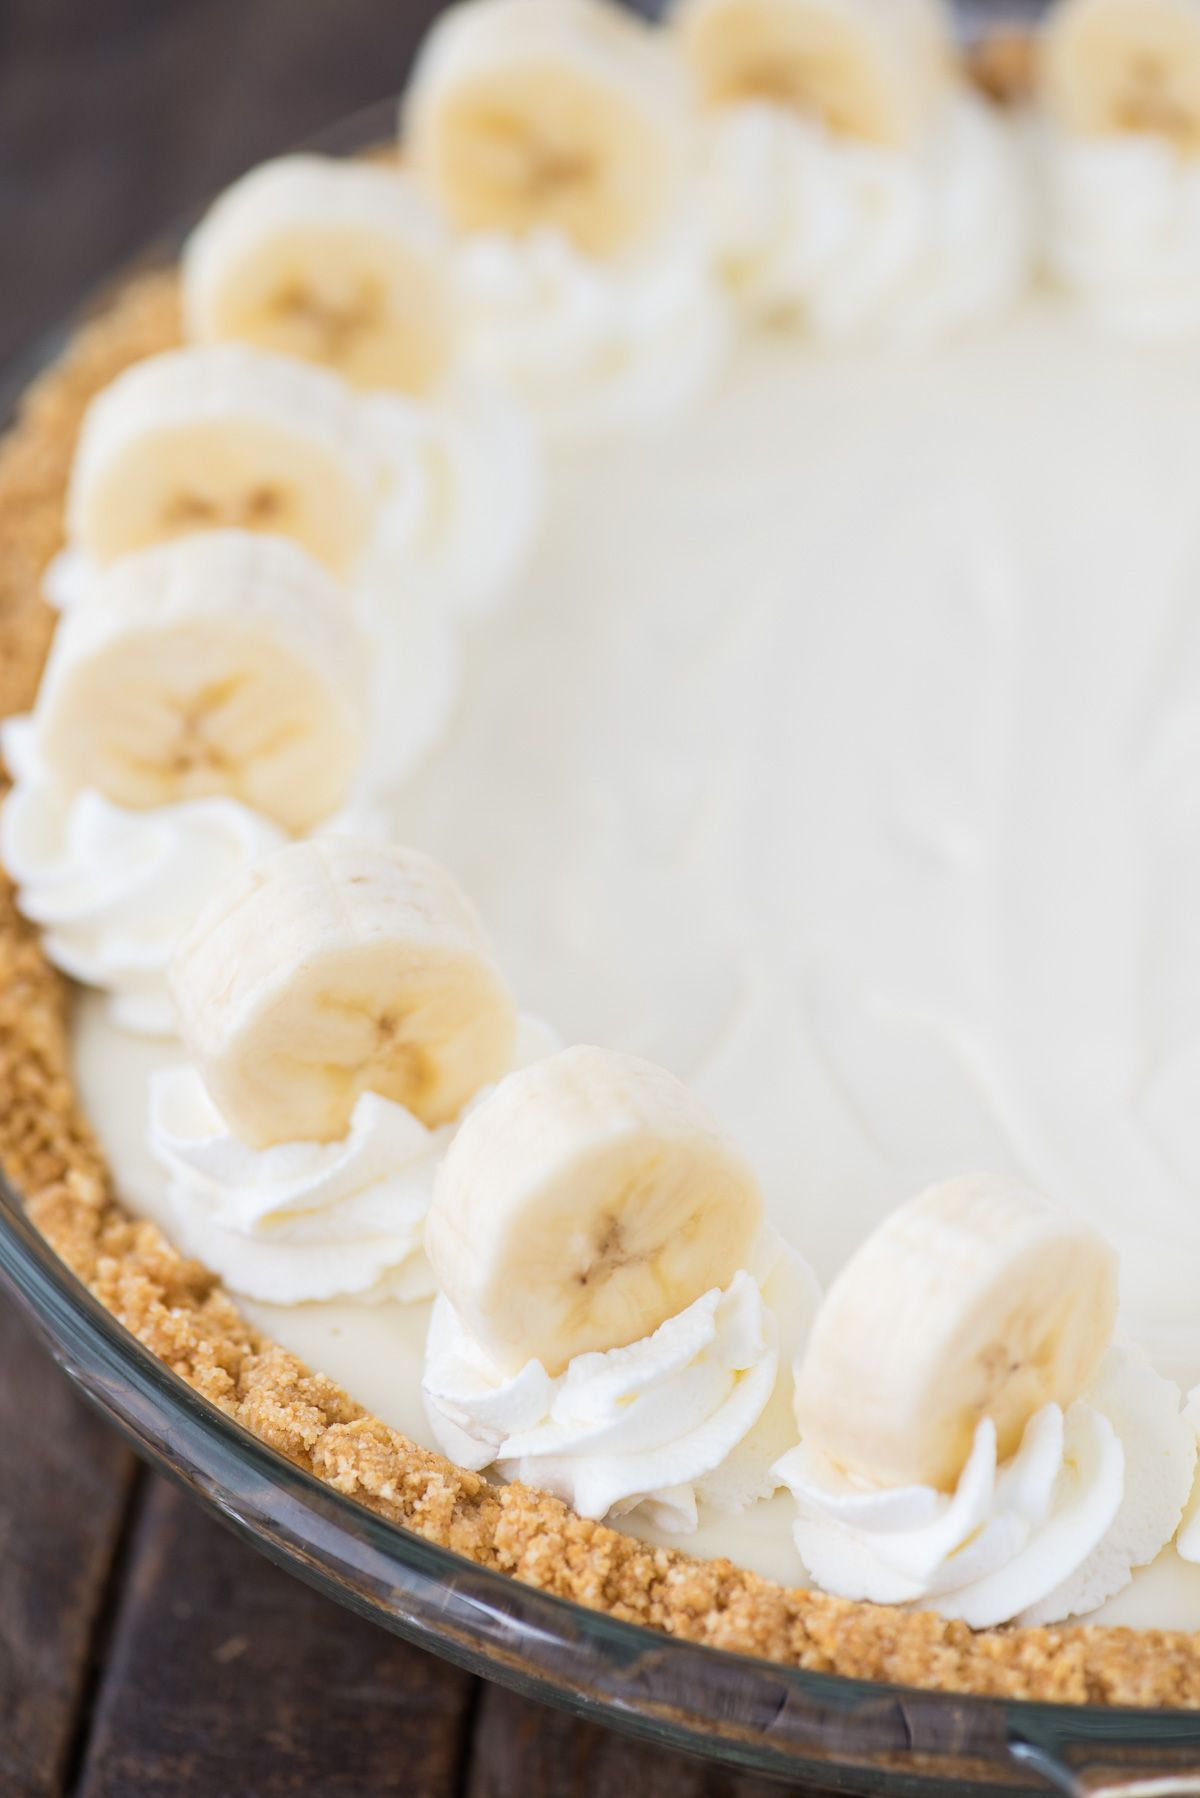 Banana Breeze Pie Is A No Bake Creamy Custard Like Banana Pie That Uses Cream Cheese Swee Sweetened Condensed Milk Recipes Banana Cream Pie Recipe Banana Pie